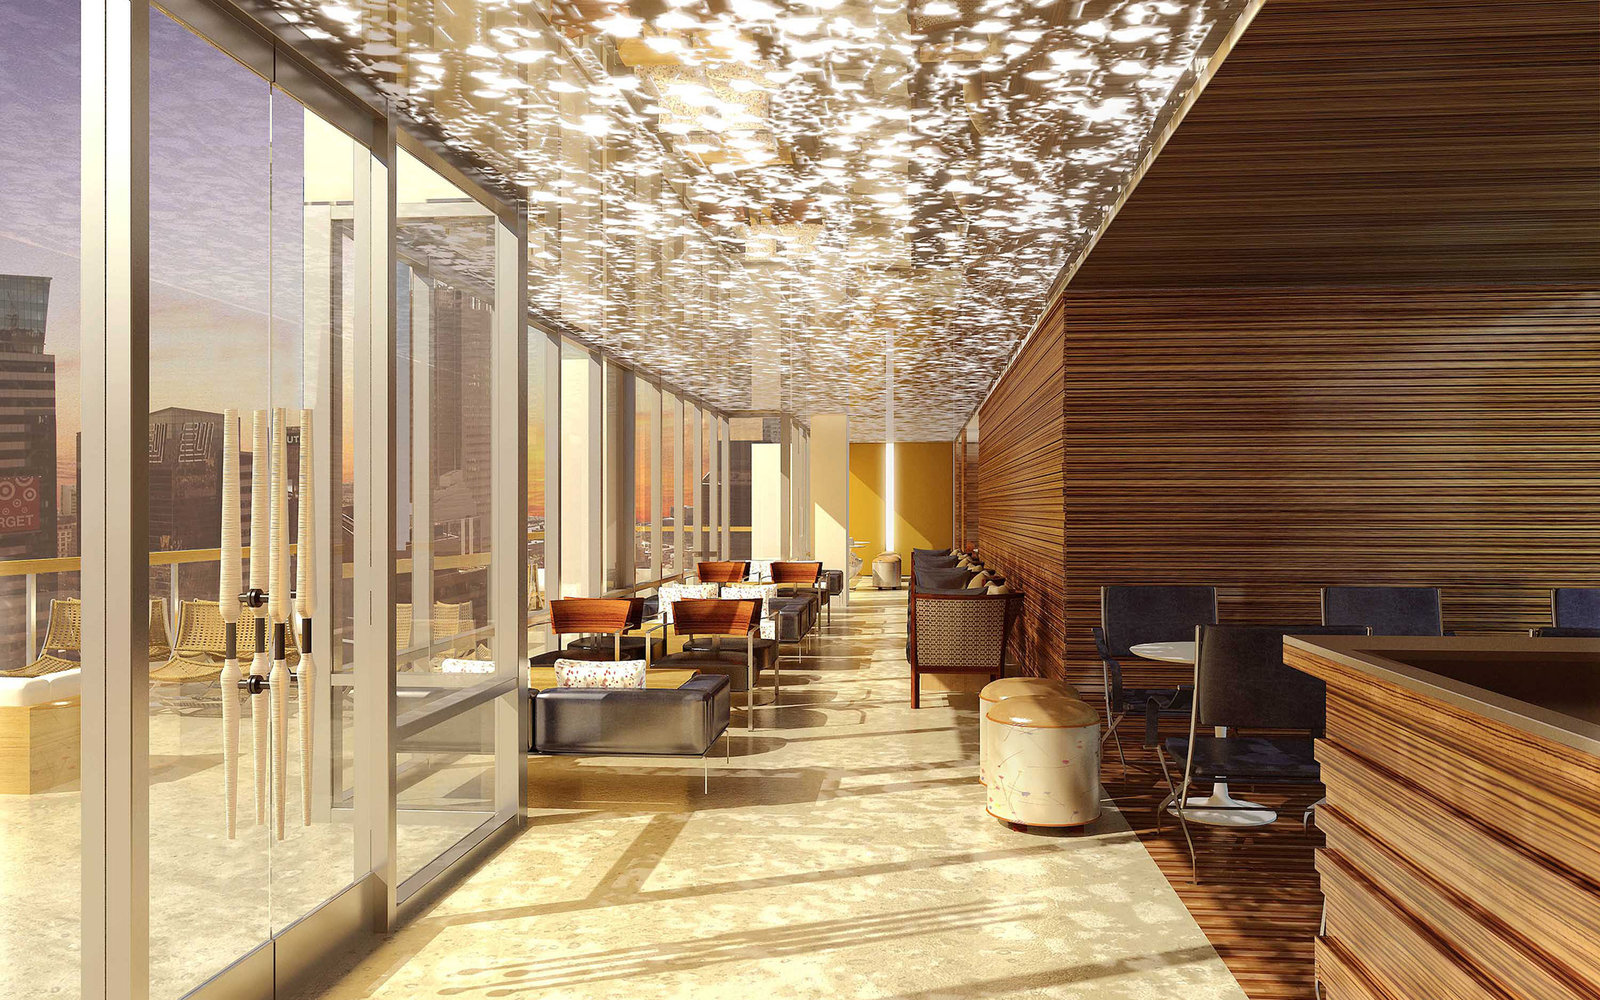 FOR DEC 10, 2013 - COMMERCIAL REAL ESTATE SECTION  ((handouts))CAPTION: NEW HOTEL Hyatt  Times Square - 135 W 45th St  caption : Rendering of Bar 54- the highest rooftop bar in NY on the 54th Floor, 500ft up.